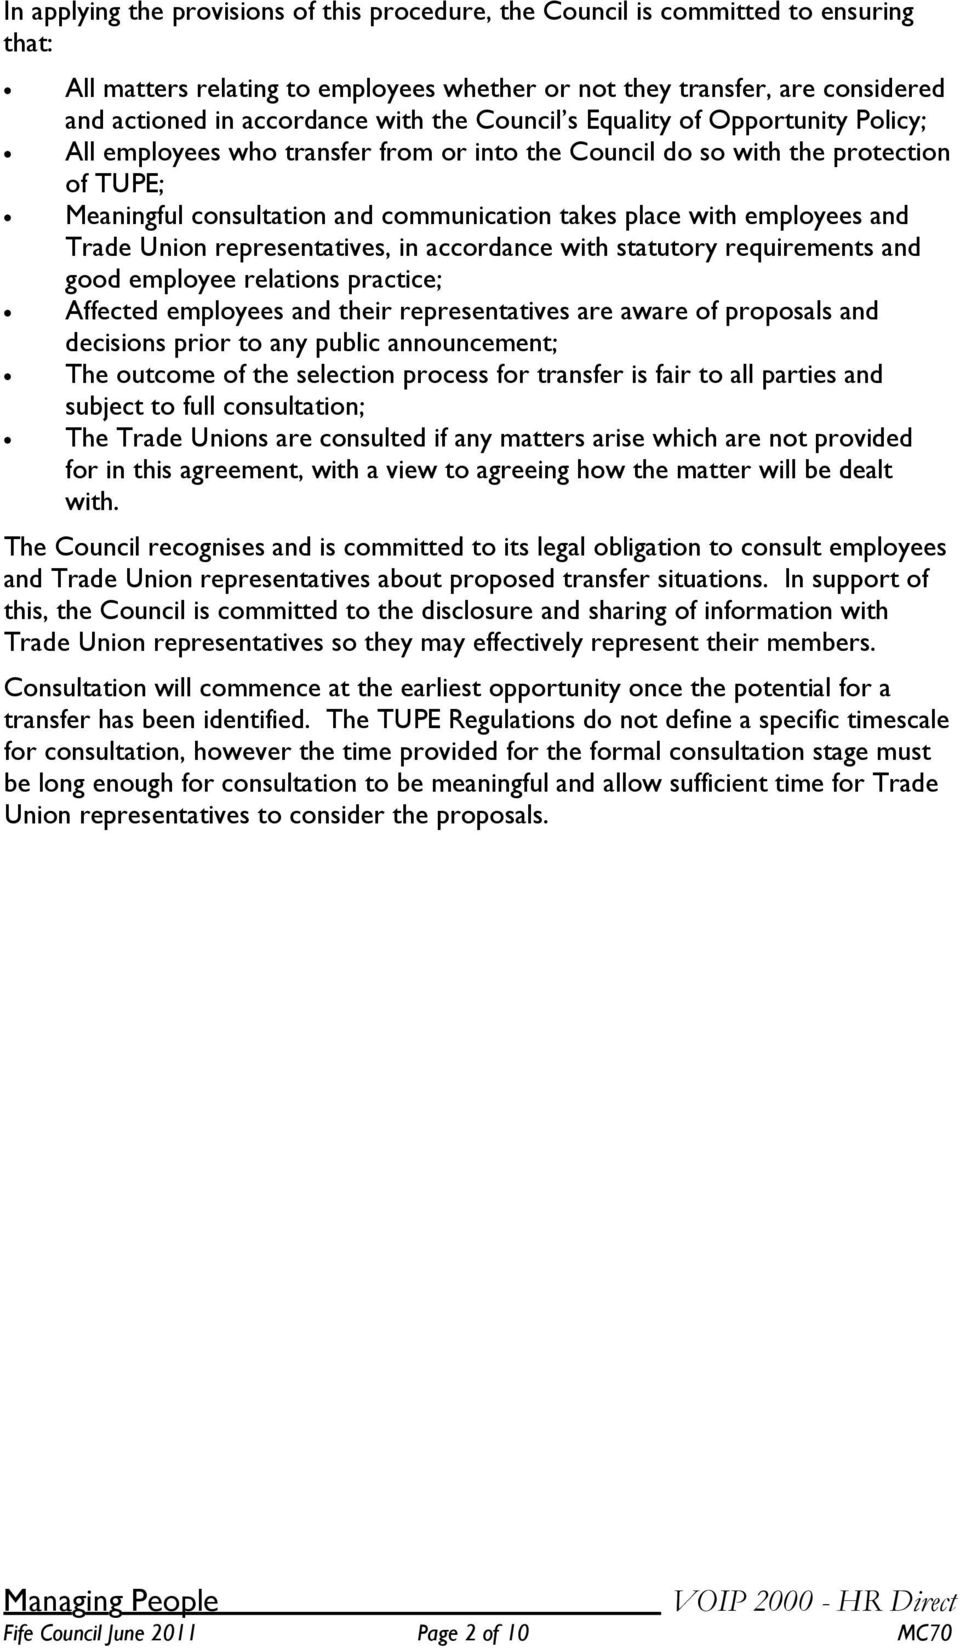 employees and Trade Union representatives, in accordance with statutory requirements and good employee relations practice; Affected employees and their representatives are aware of proposals and